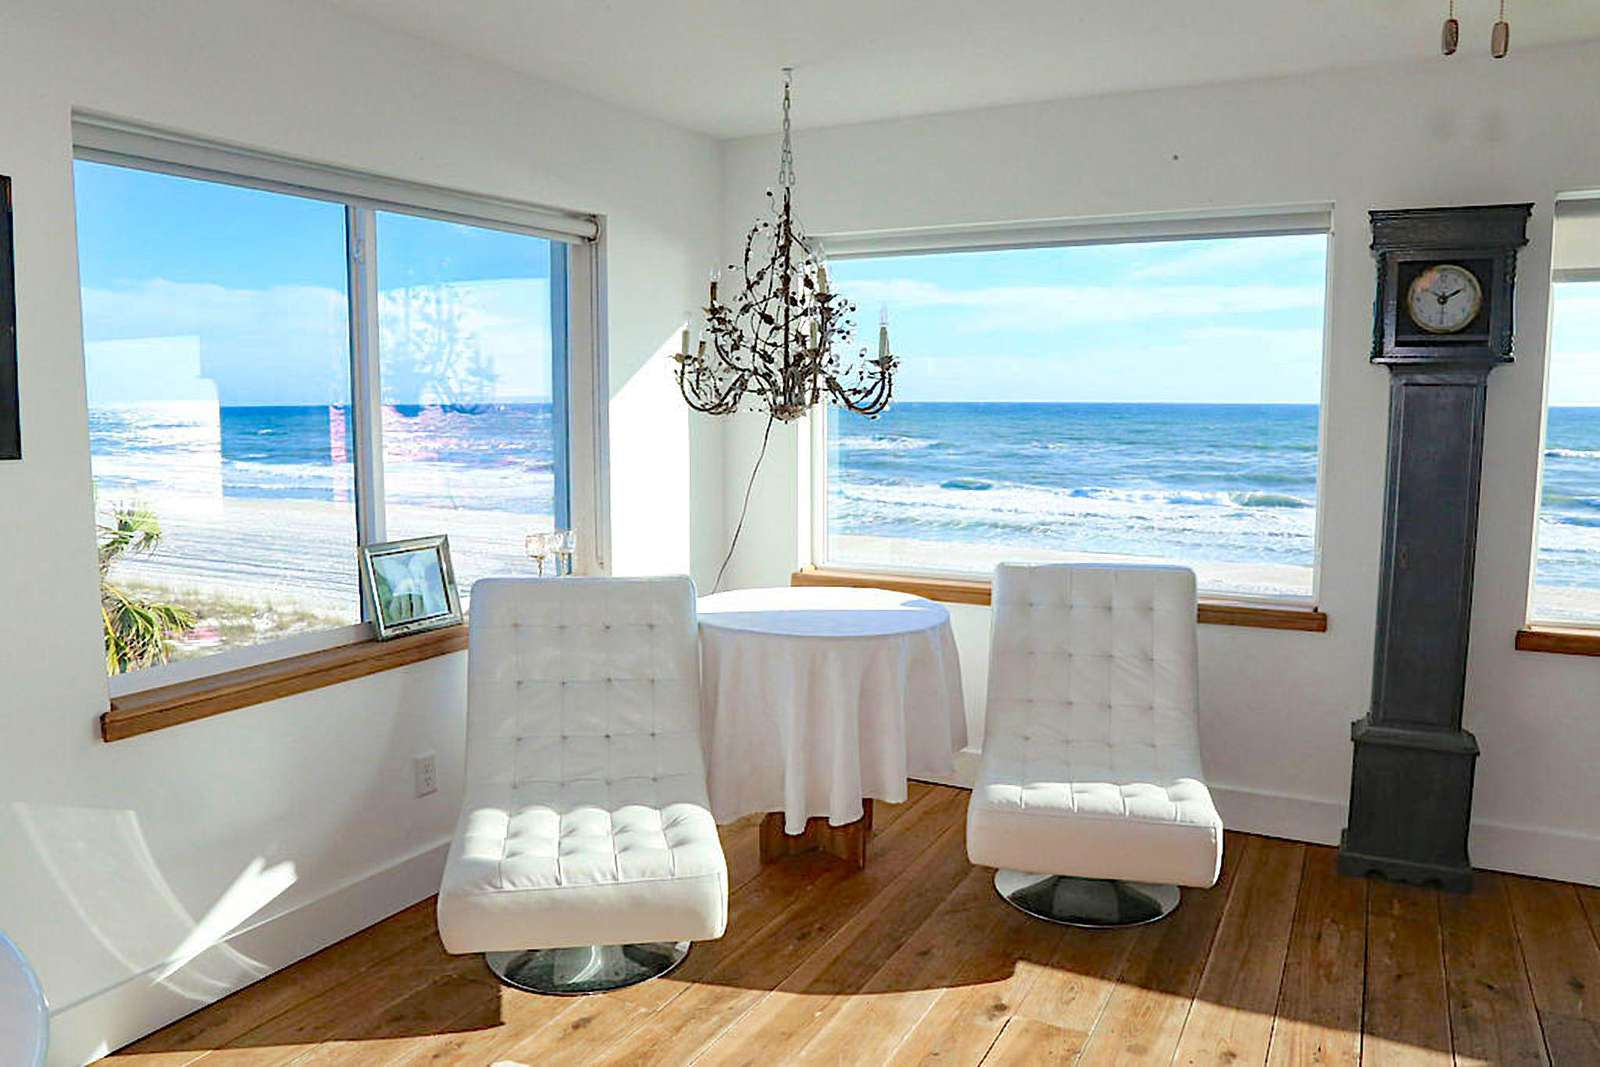 Br # 4 Bridal suite overlooking the gulf